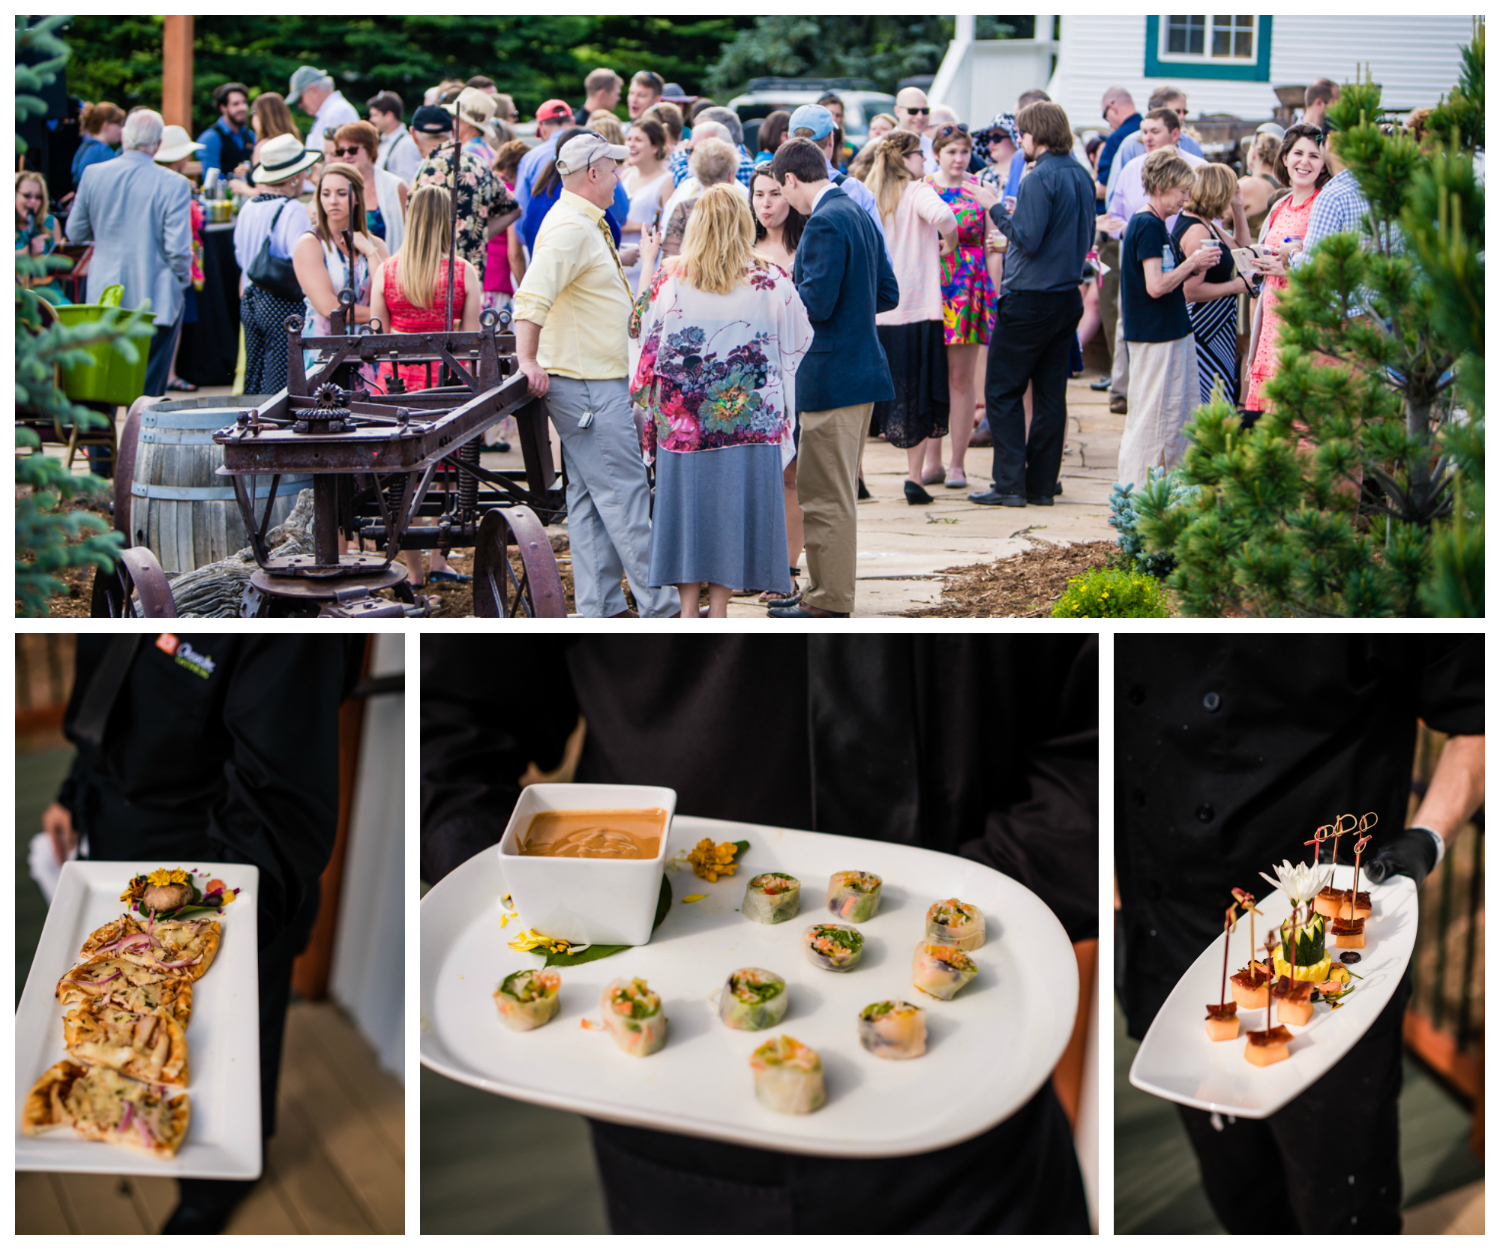 Occasions Catering at Deer Creek Valley Ranch Wedding. Photographed by JMGant Photography.